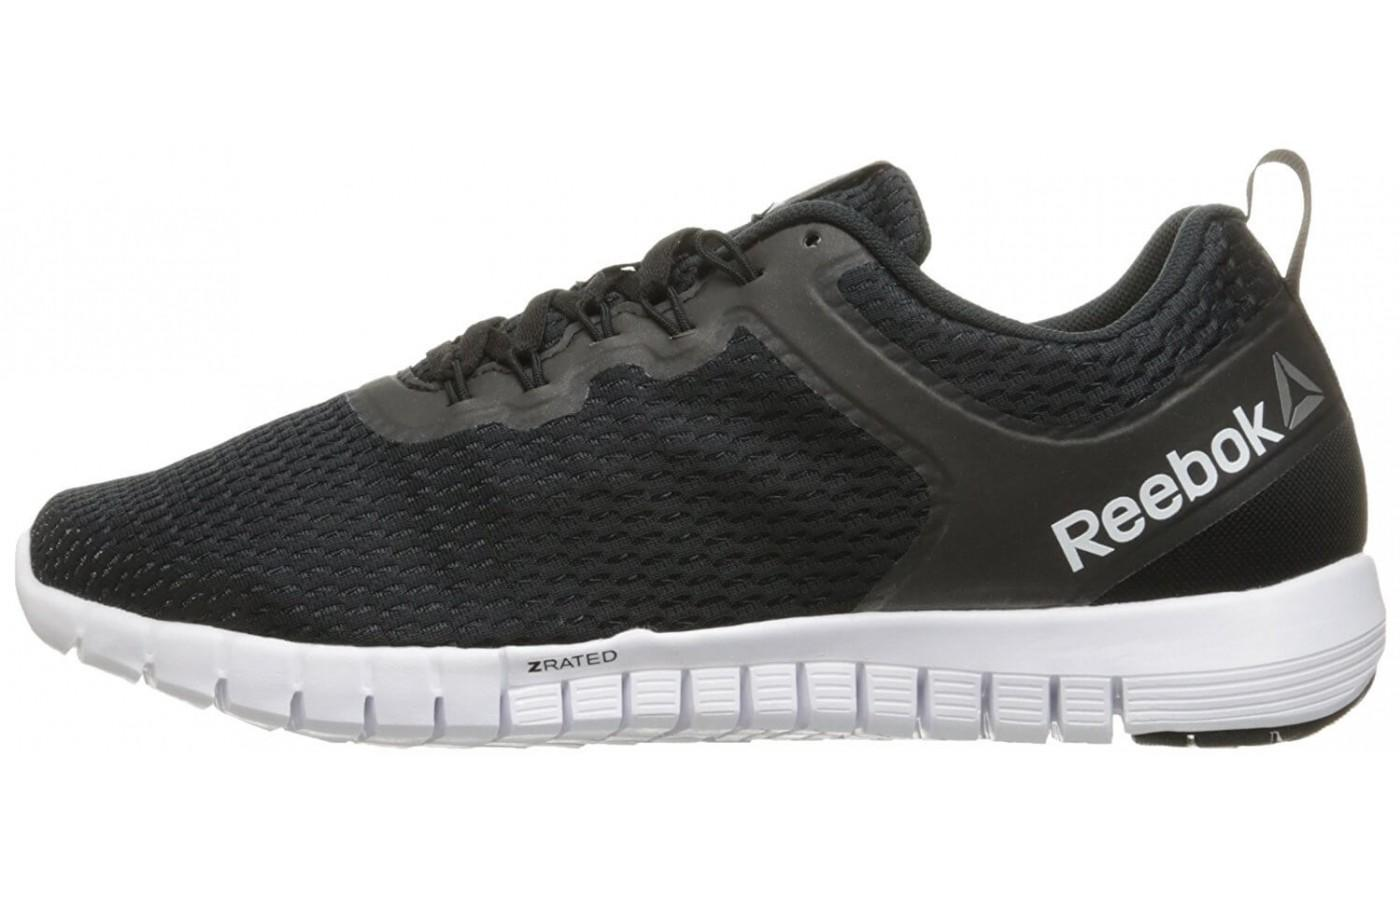 Reebok ZQuick Lite has a thick and durable outsole